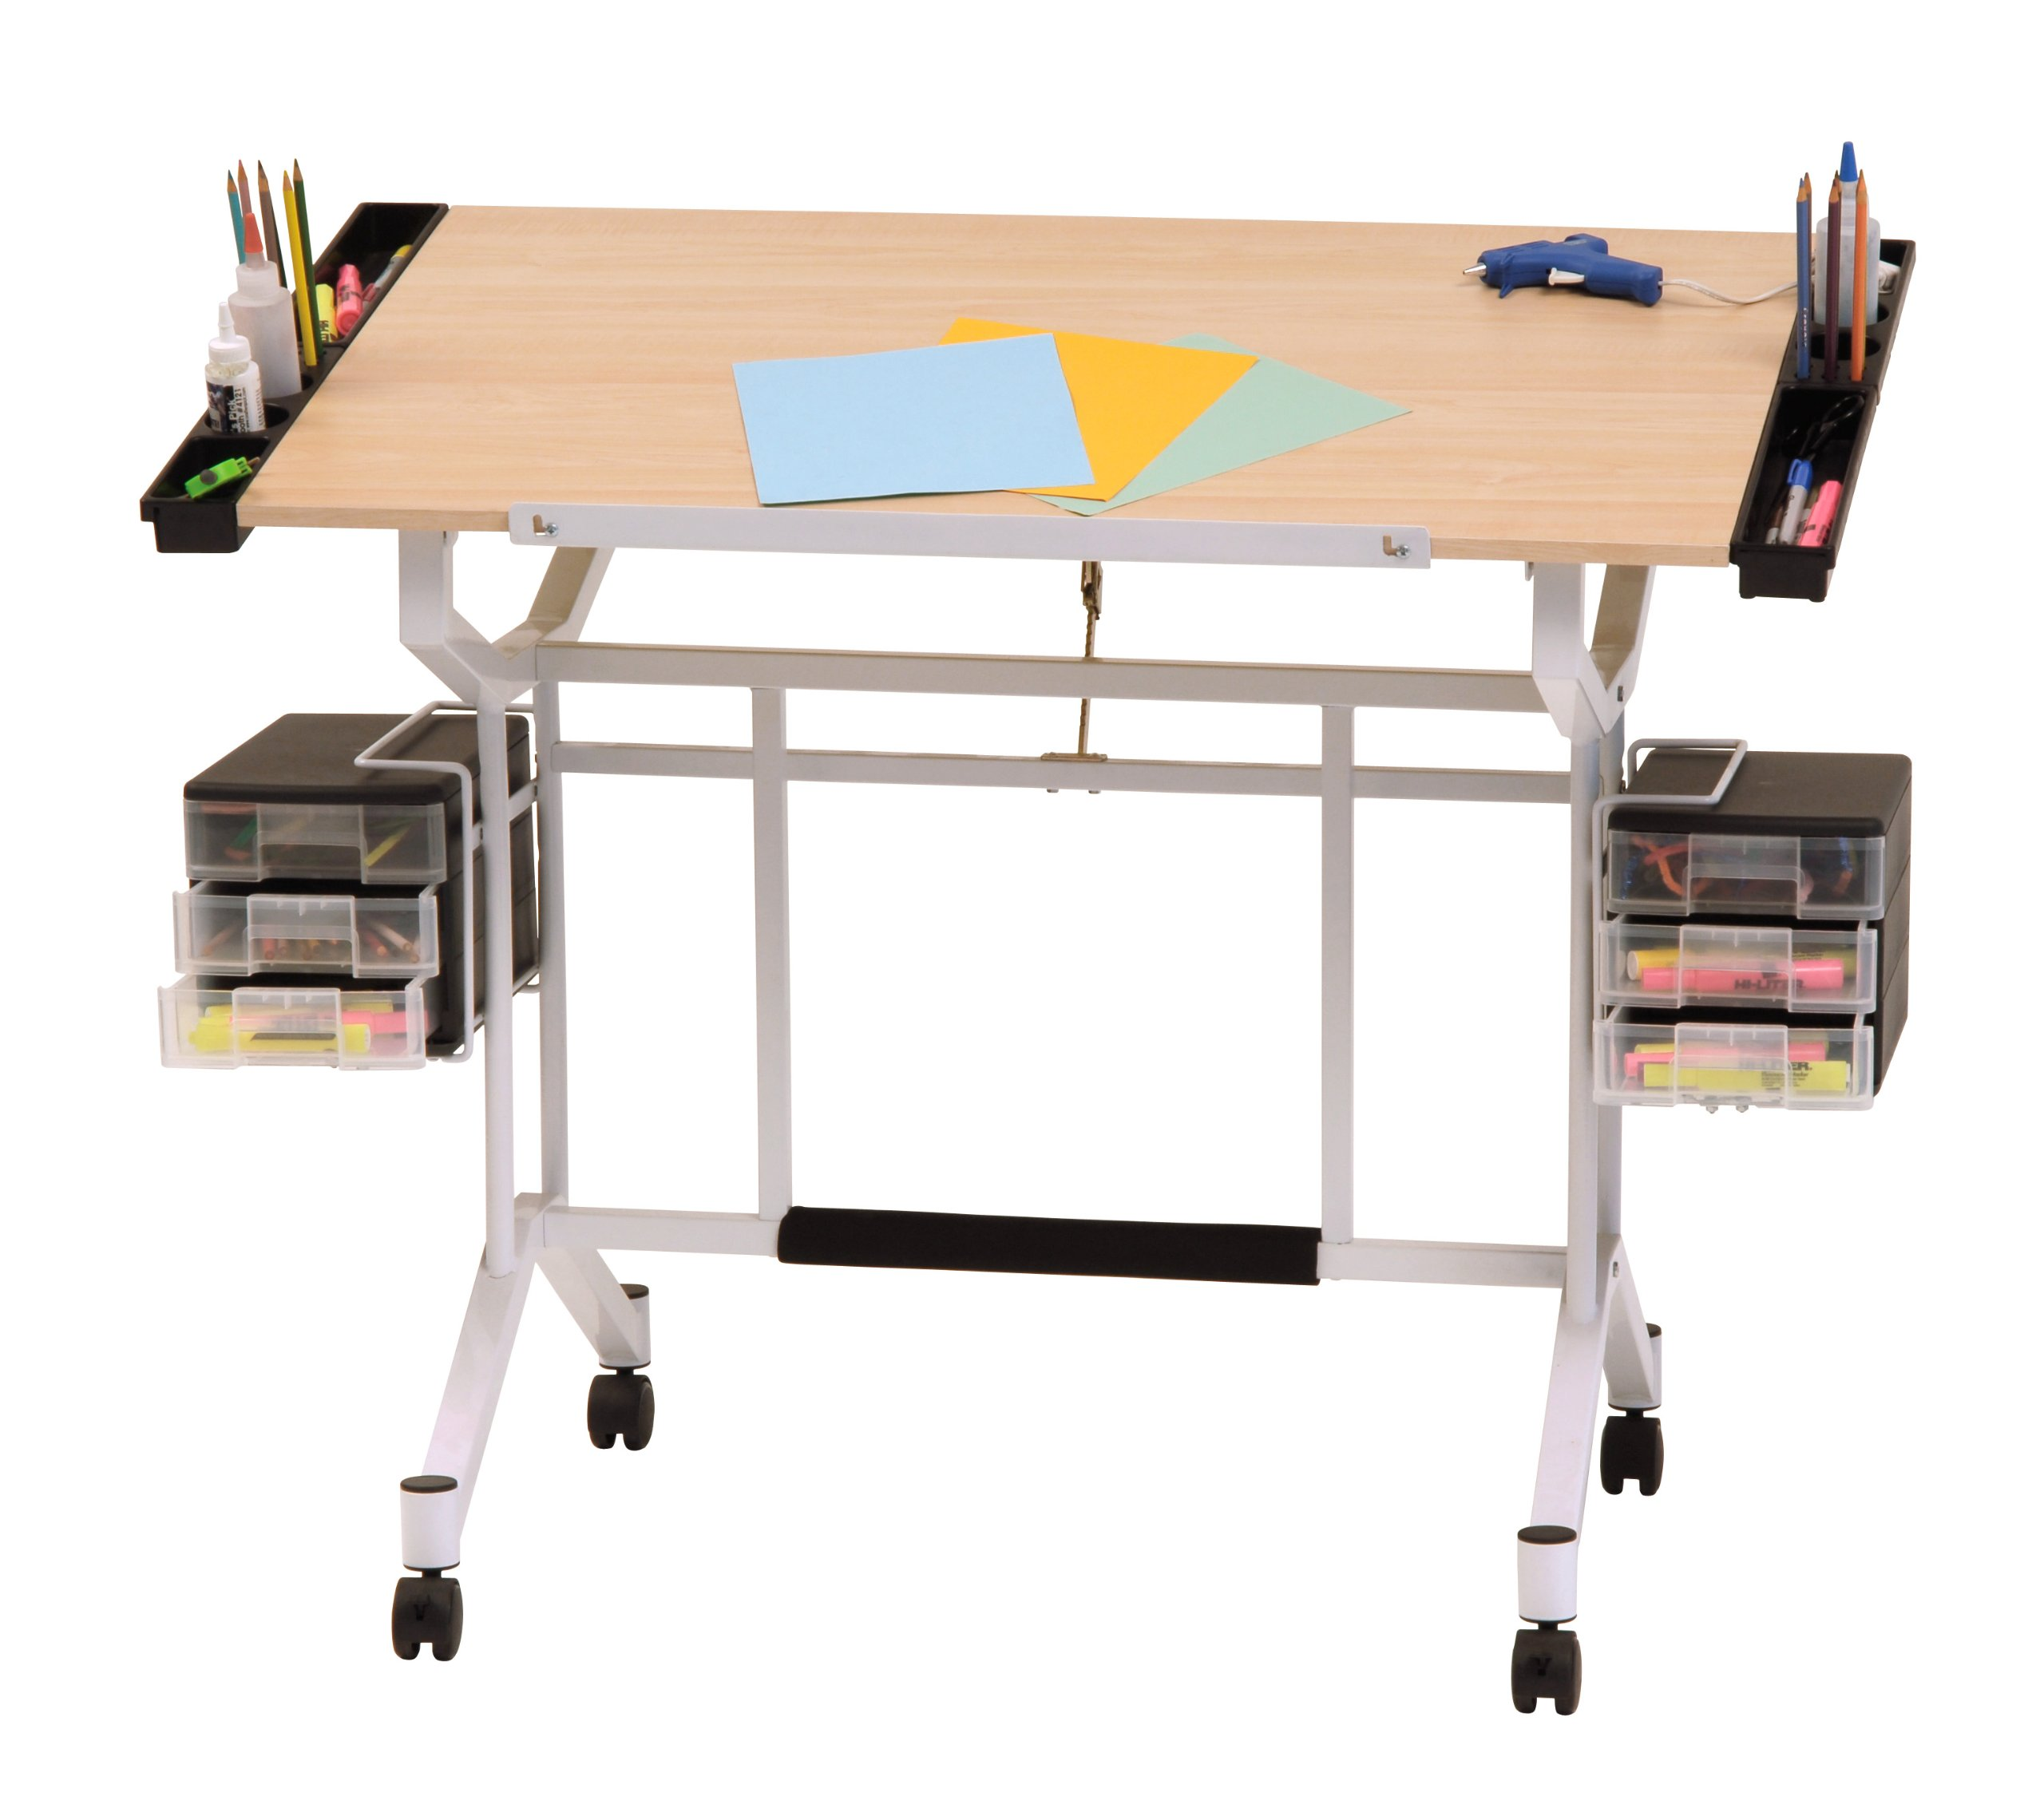 Studio Designs Pro Craft Station in White with Maple 13245 by Studio Designs